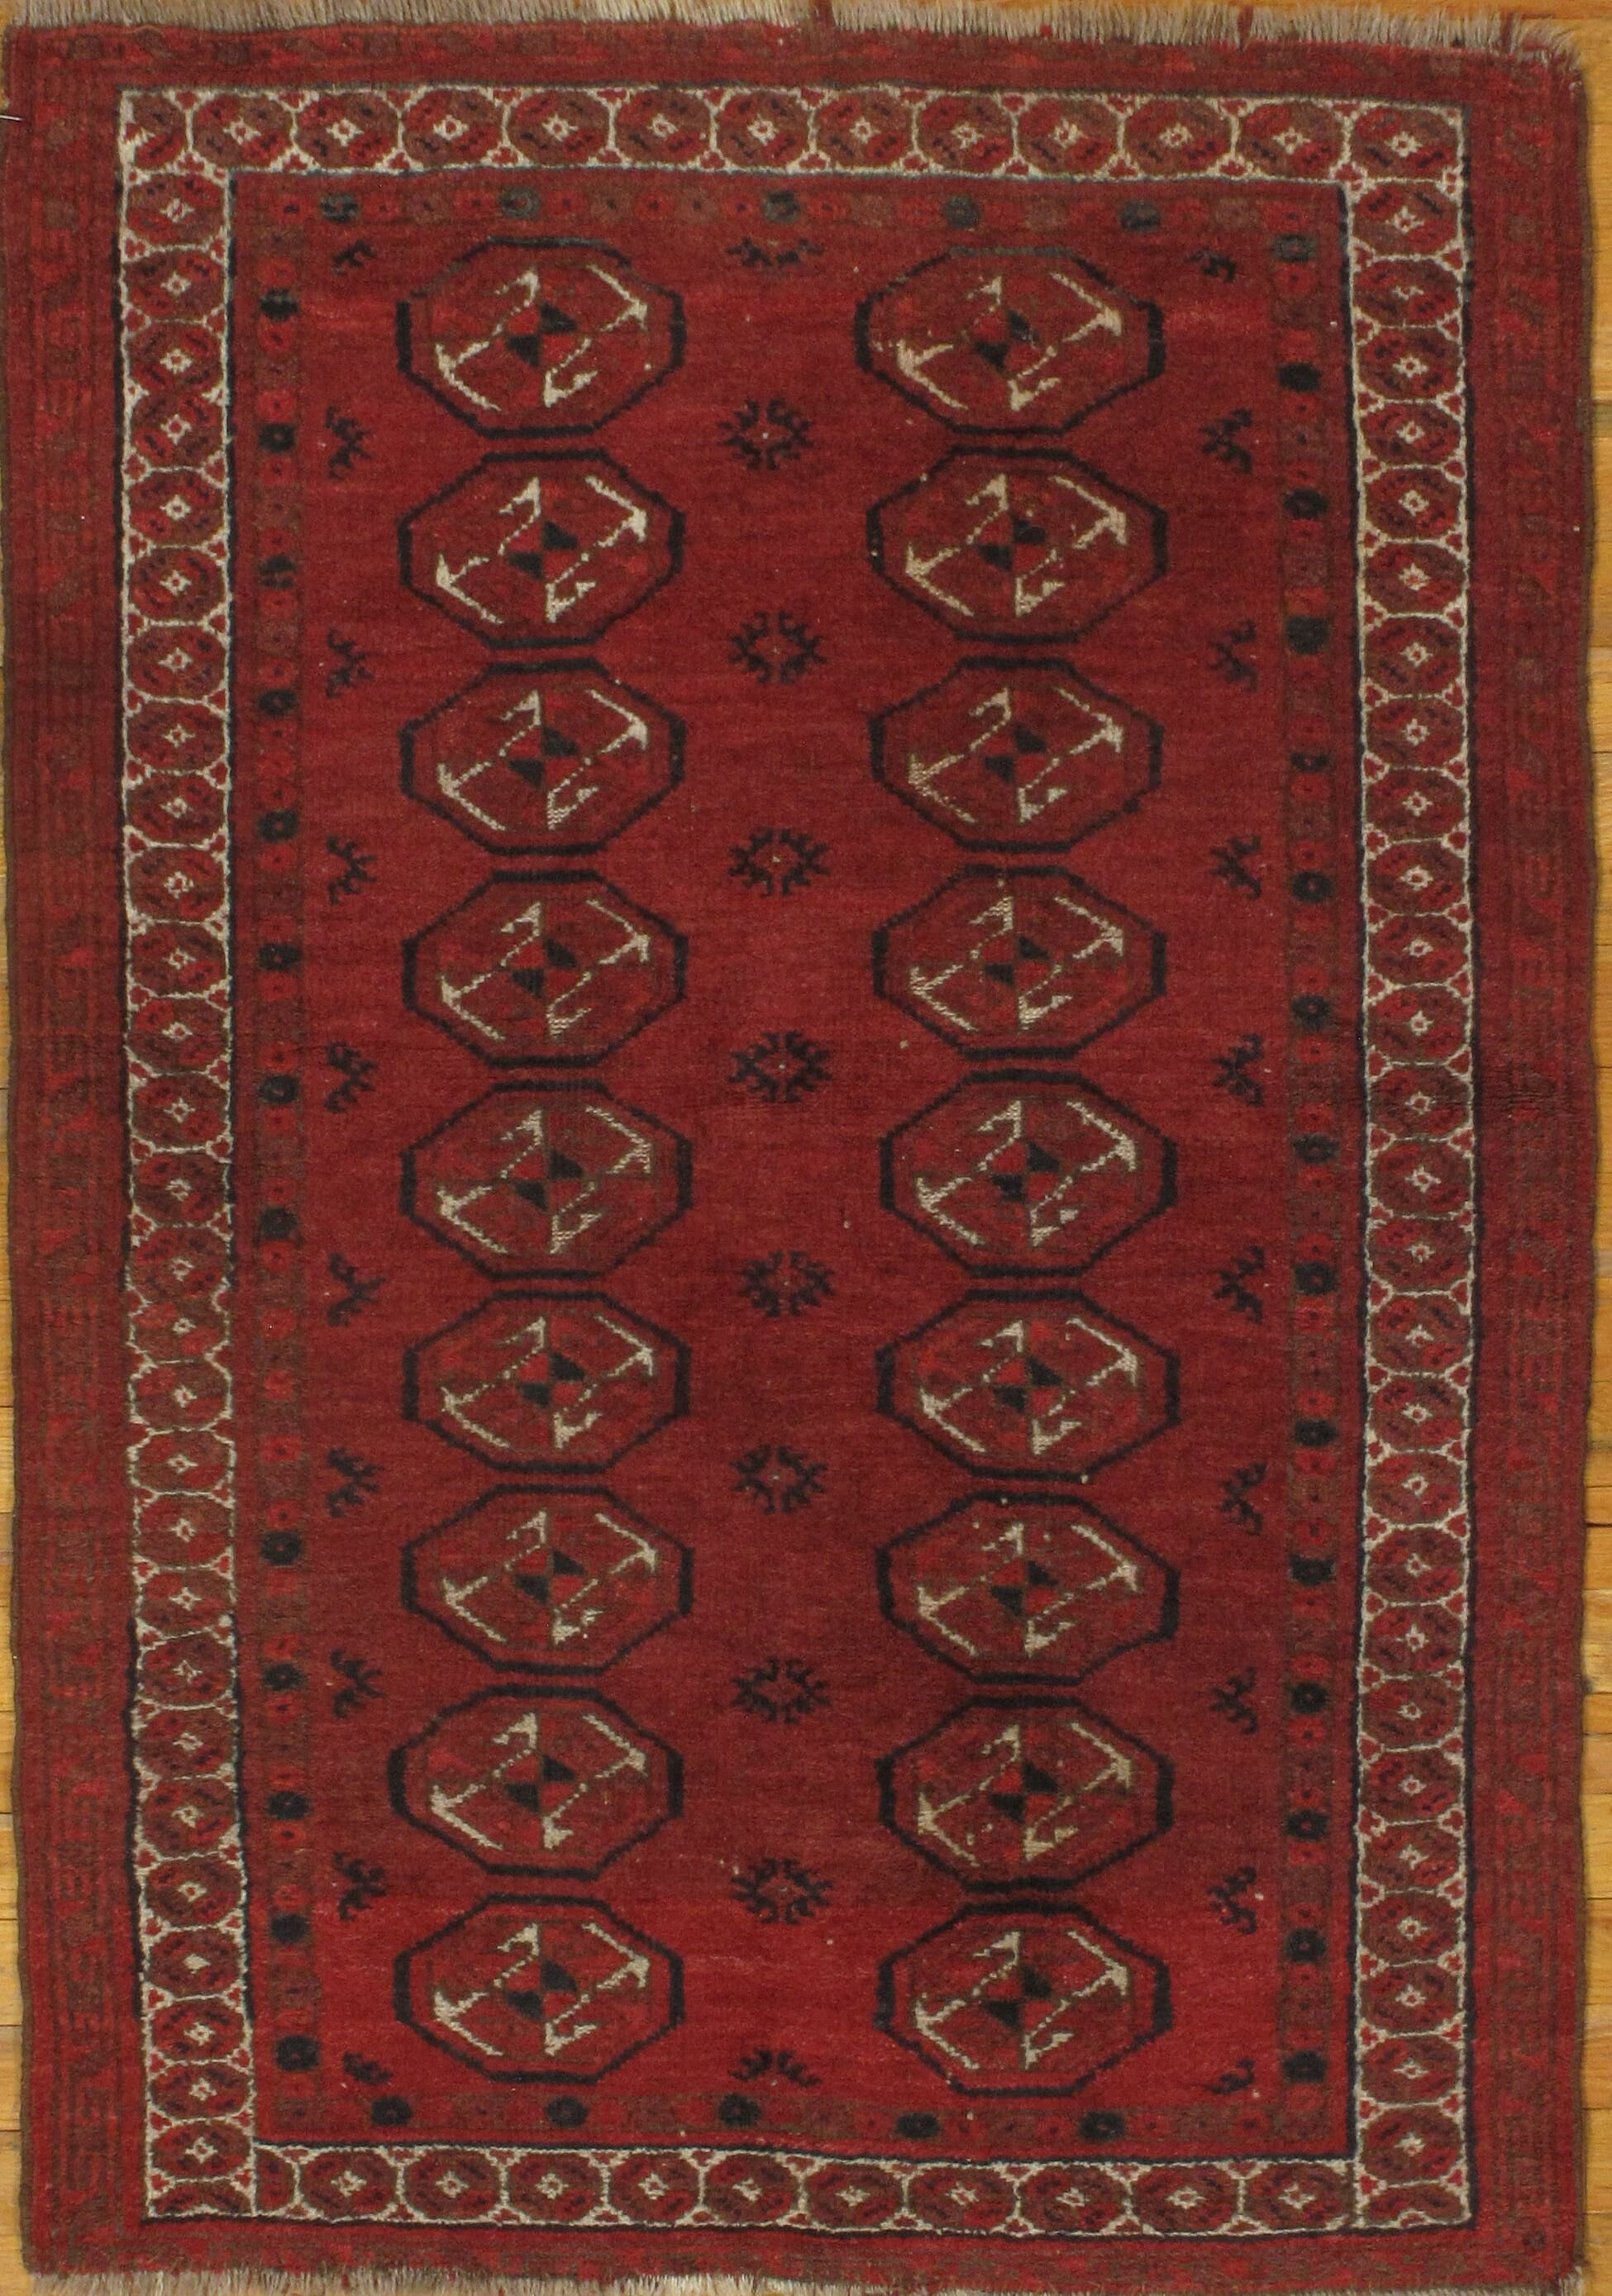 Genuine Antique Afghan Turkmen Hand-Knotted Wool Red Area Rug